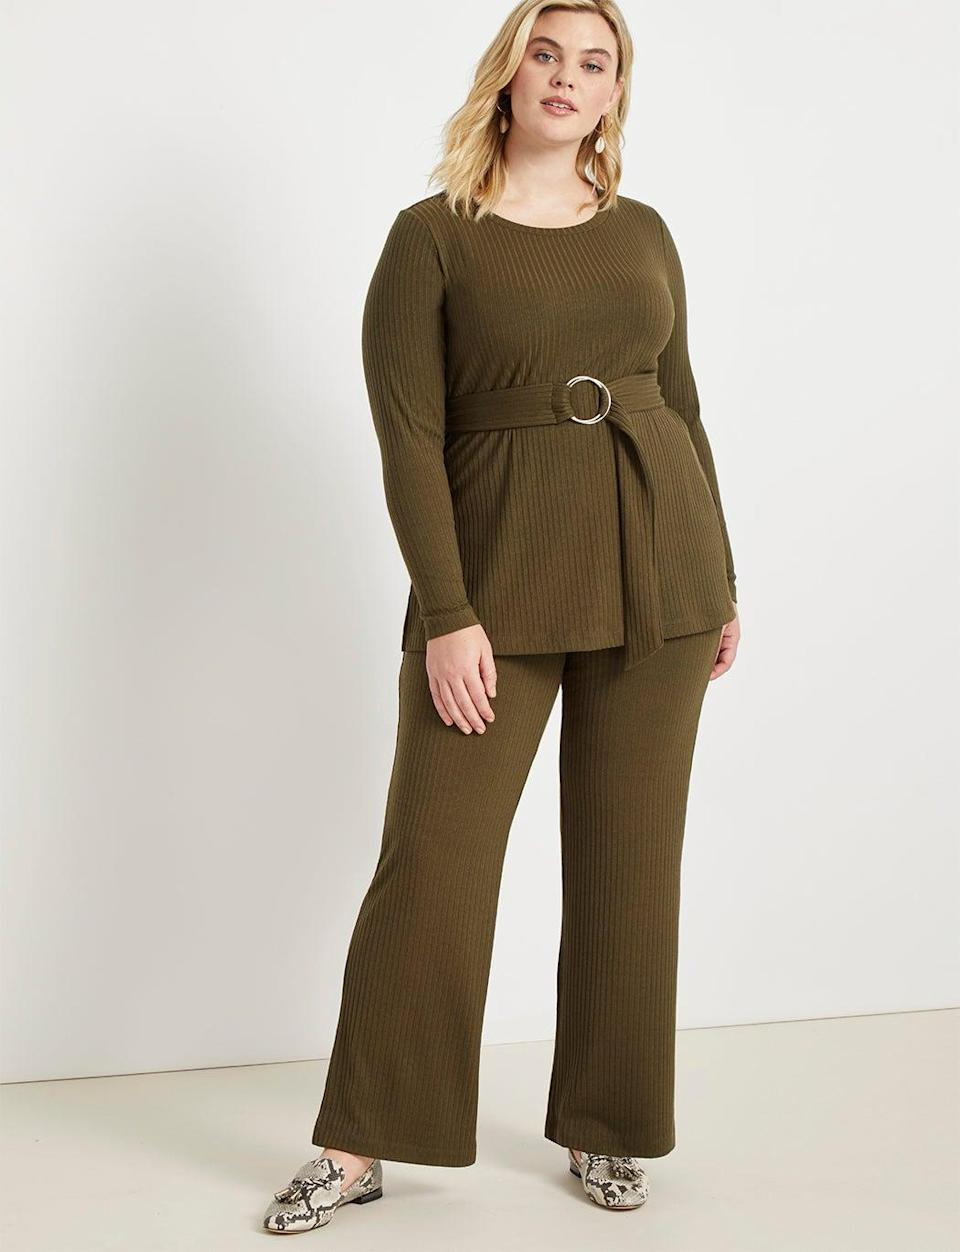 "<br> <br> <strong>Eloquii</strong> Ribbed Flare Leg Pant, $, available at <a href=""https://go.skimresources.com/?id=30283X879131&url=https%3A%2F%2Fwww.eloquii.com%2Fribbed-flare-leg-pant%2F1178638.html%3Fdwvar_1178638_colorCode%3D29"" rel=""nofollow noopener"" target=""_blank"" data-ylk=""slk:Eloquii"" class=""link rapid-noclick-resp"">Eloquii</a>"